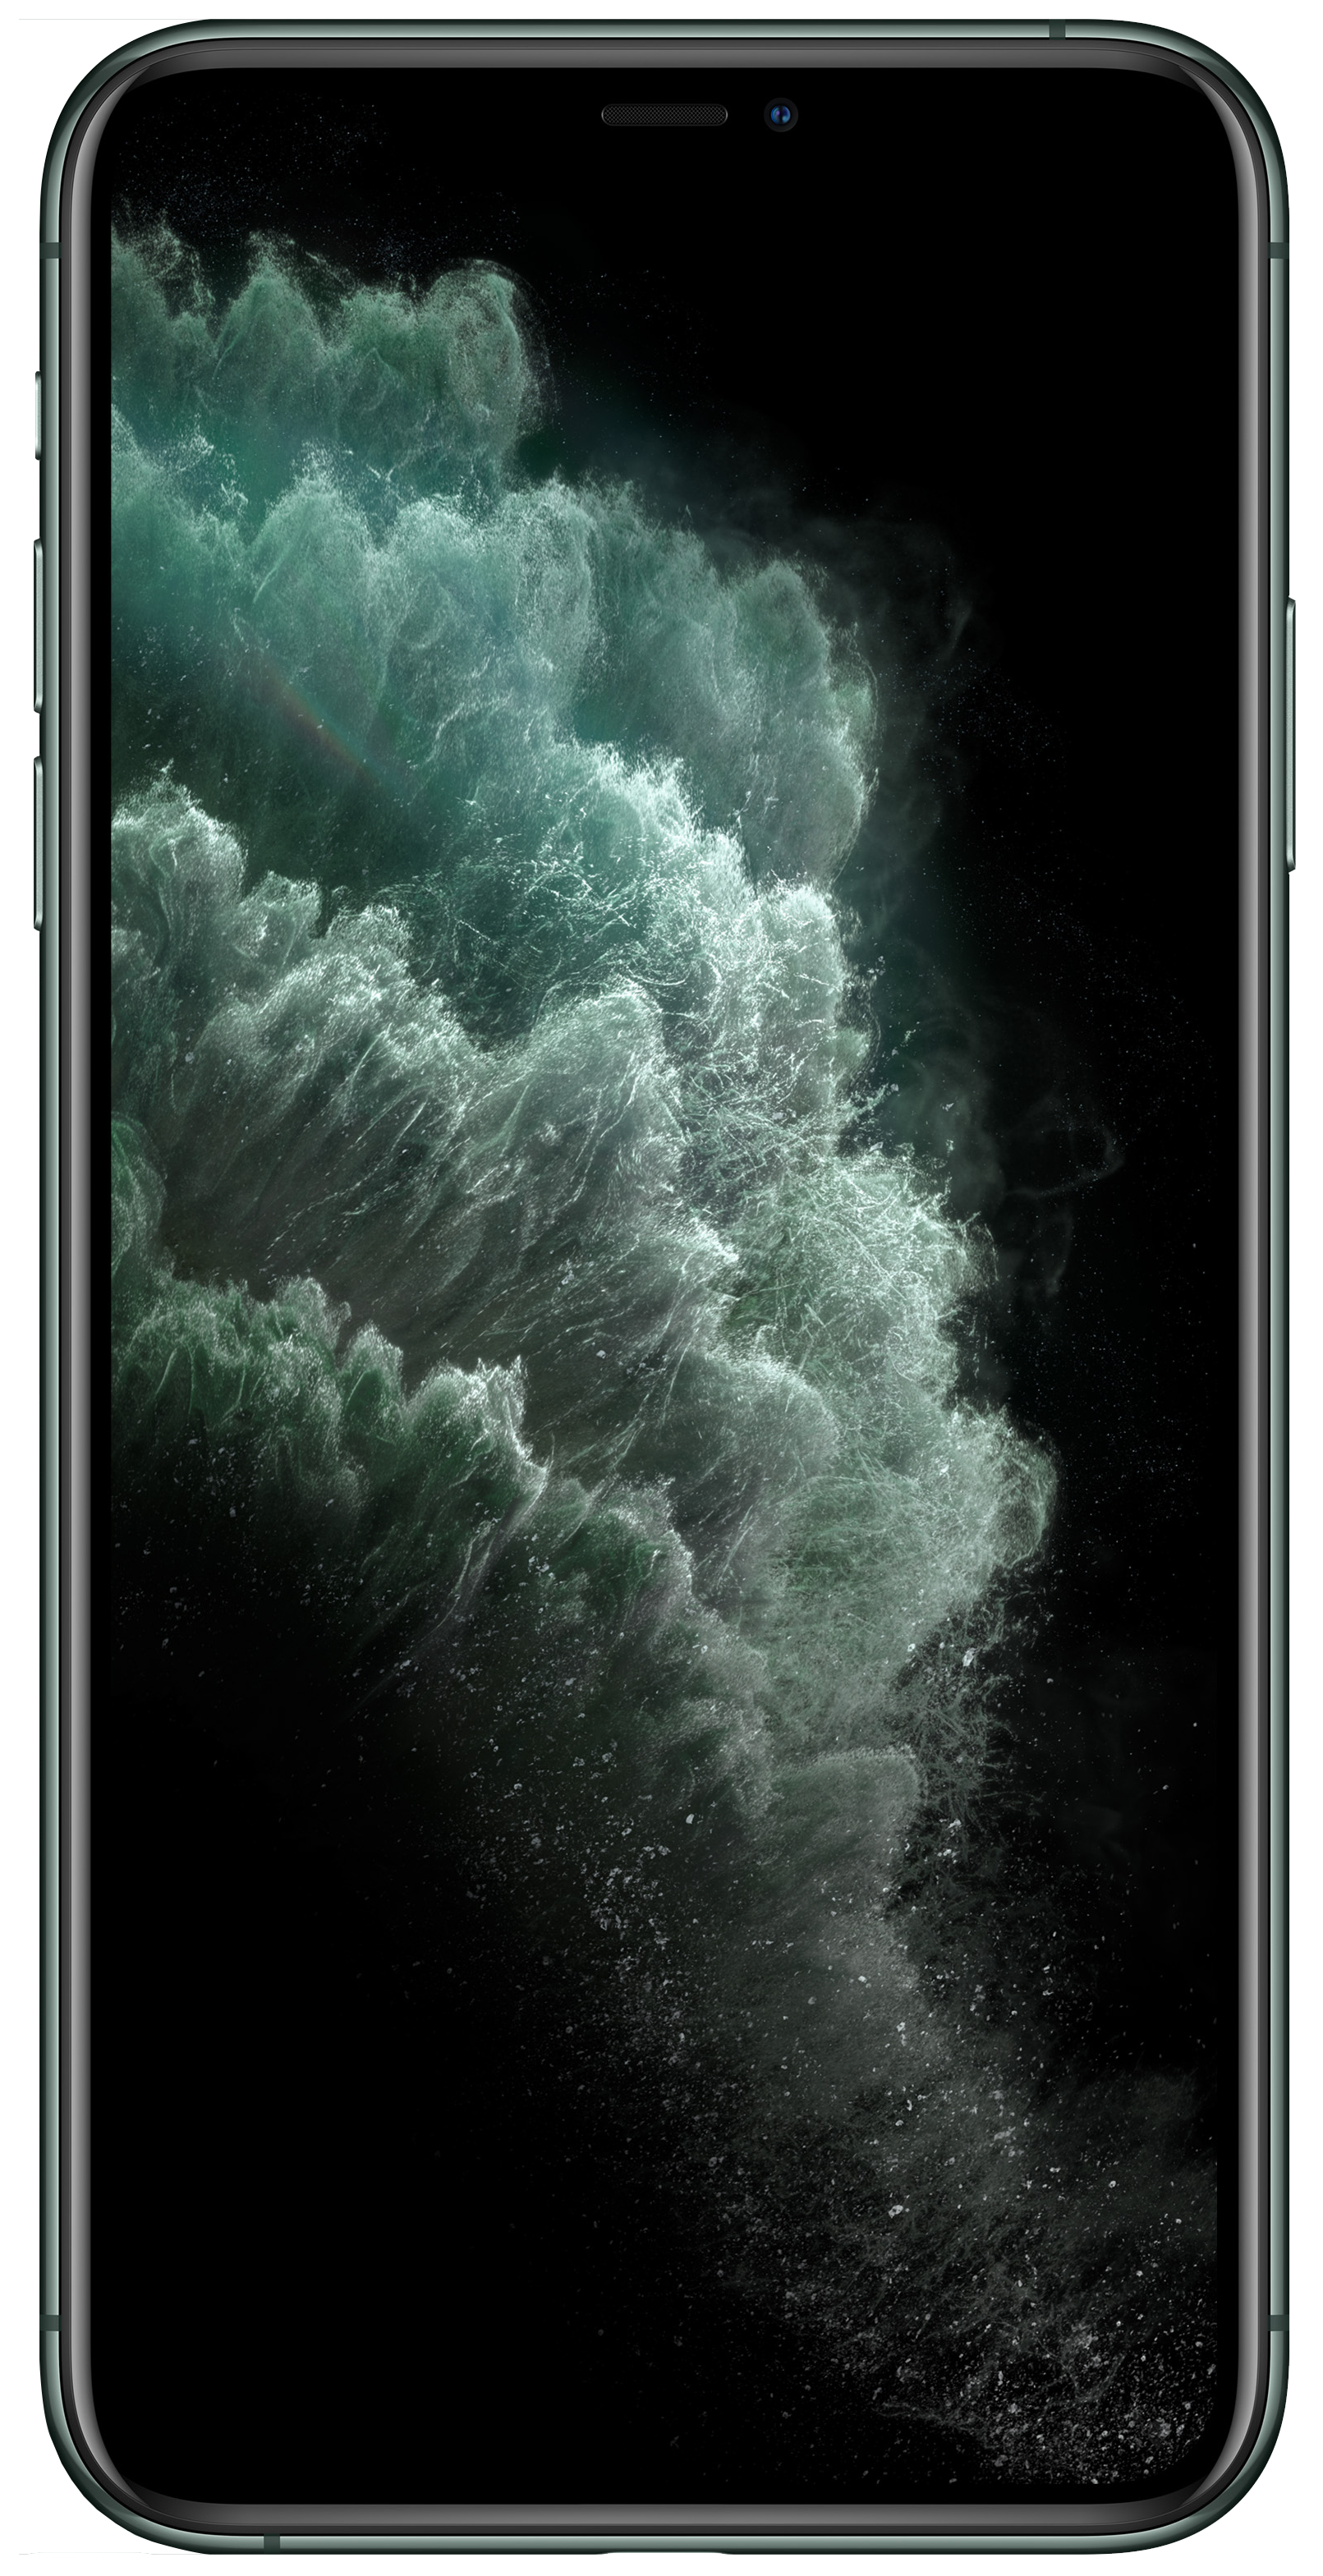 iPhone 11 Pro Max front